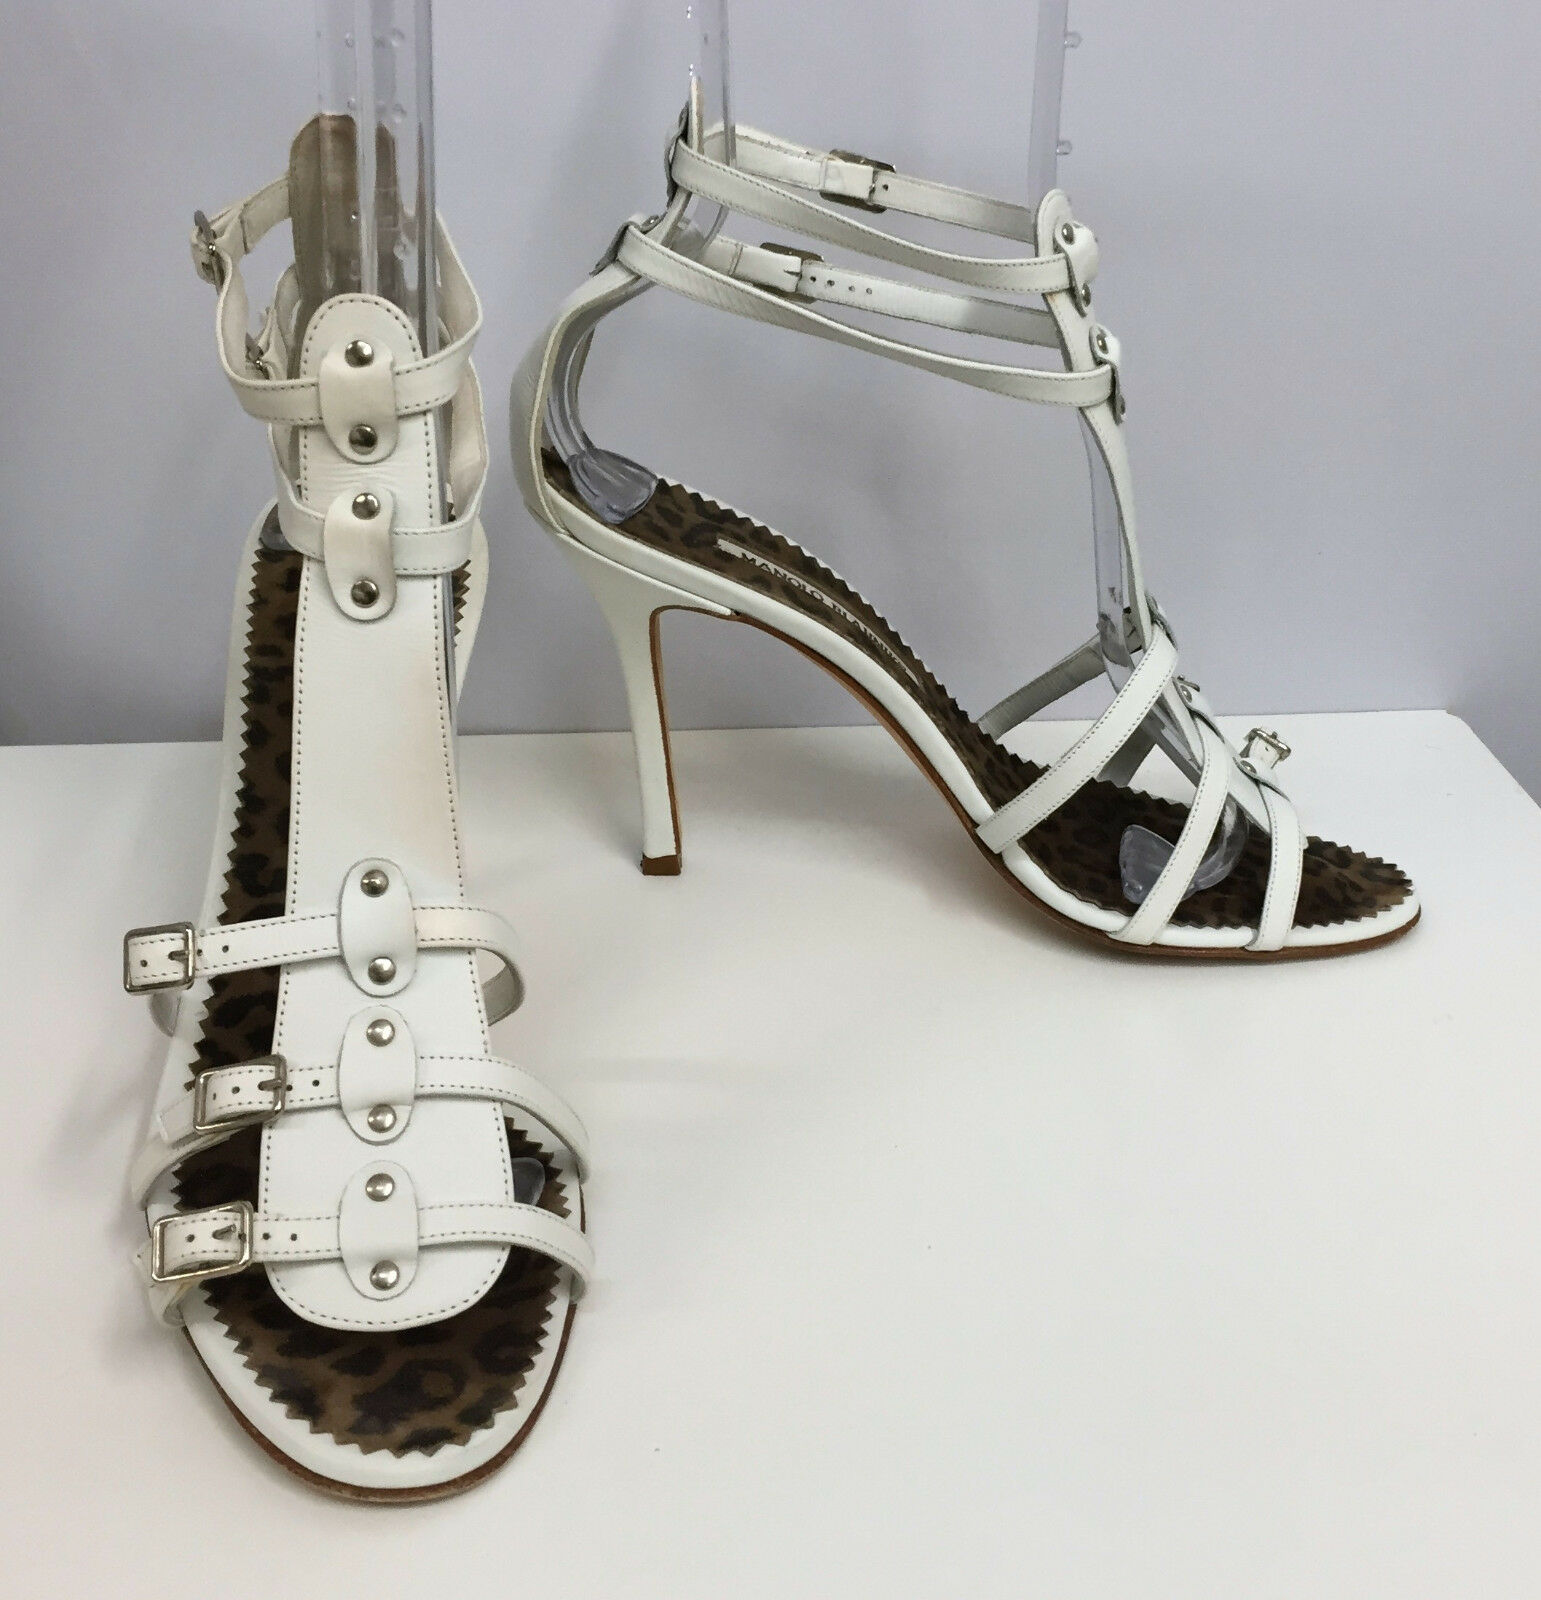 MANOLO MANOLO MANOLO BLAHNIK LEATHER schuhe Weiß 2 ANKLE STRAPS Silber STUDS & BUCKLES 391 2 a122f4